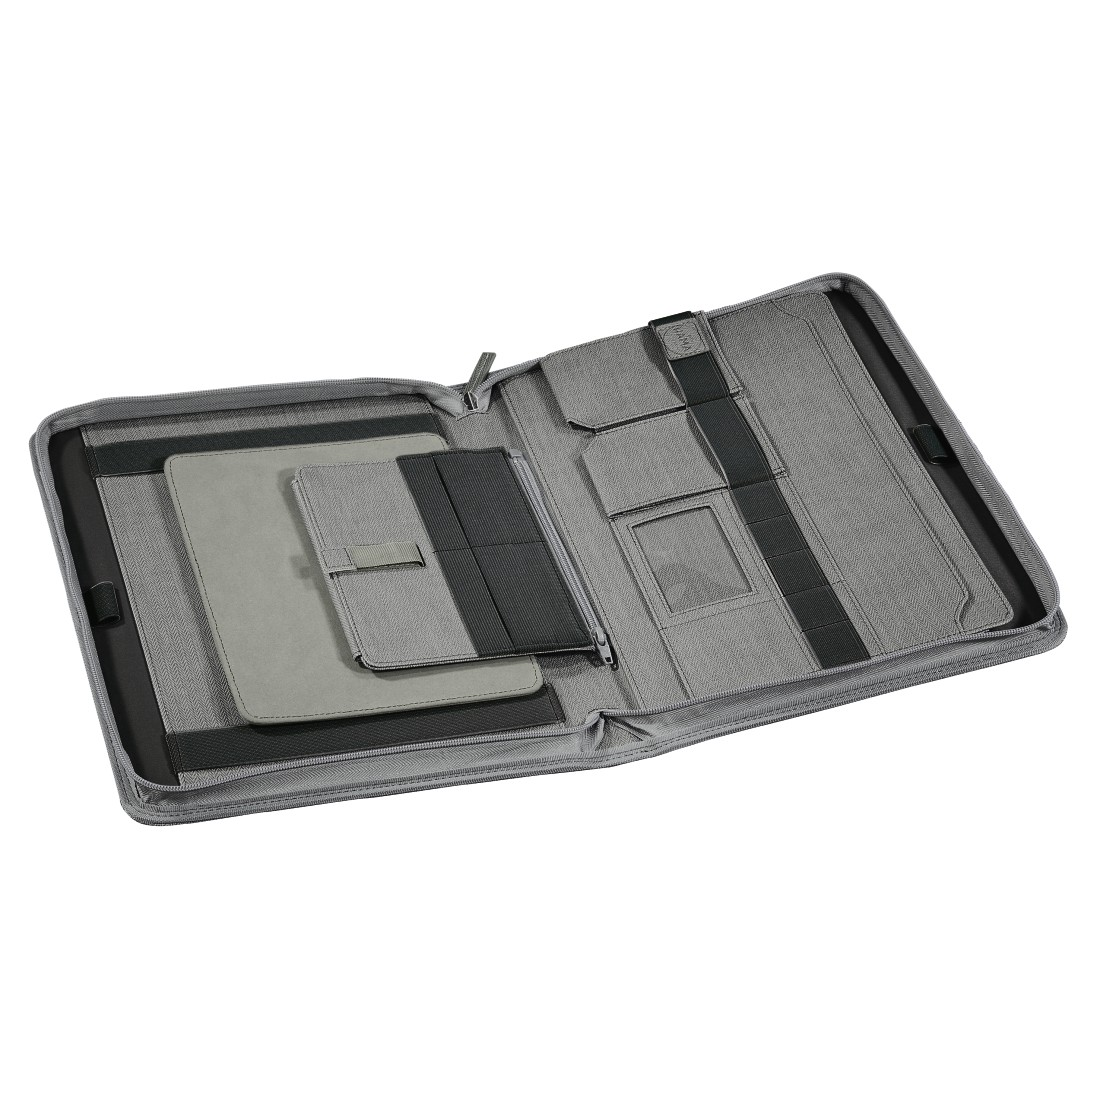 dex6 High-Res Detail 6 - Hama est. 1923, Hannover Tablet Organizer A4, light grey